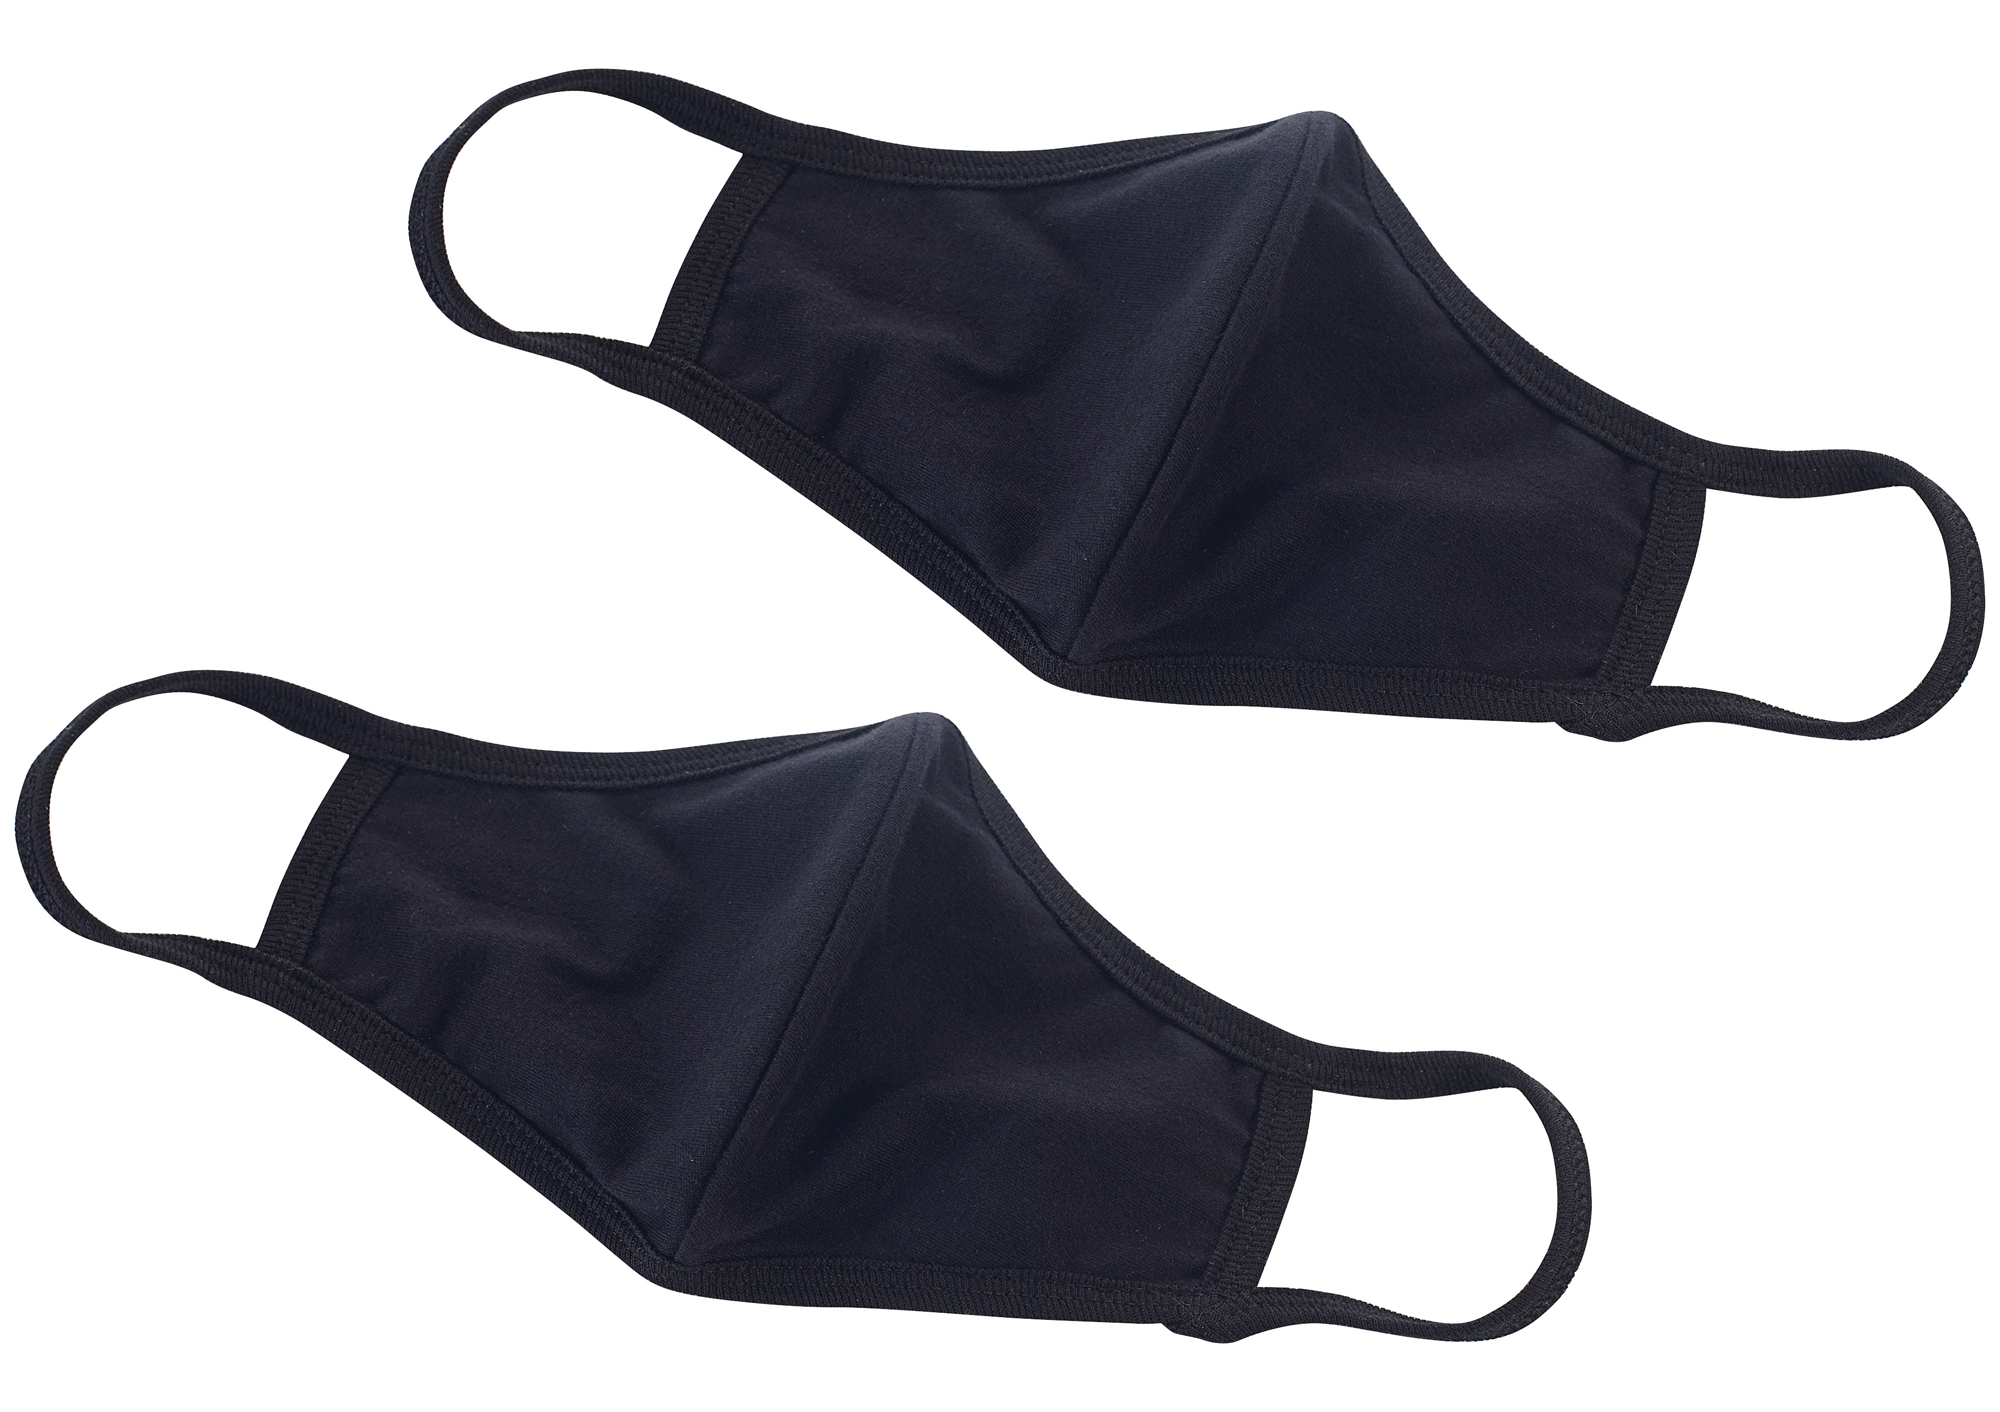 Winco MSK-1KLXL face mask